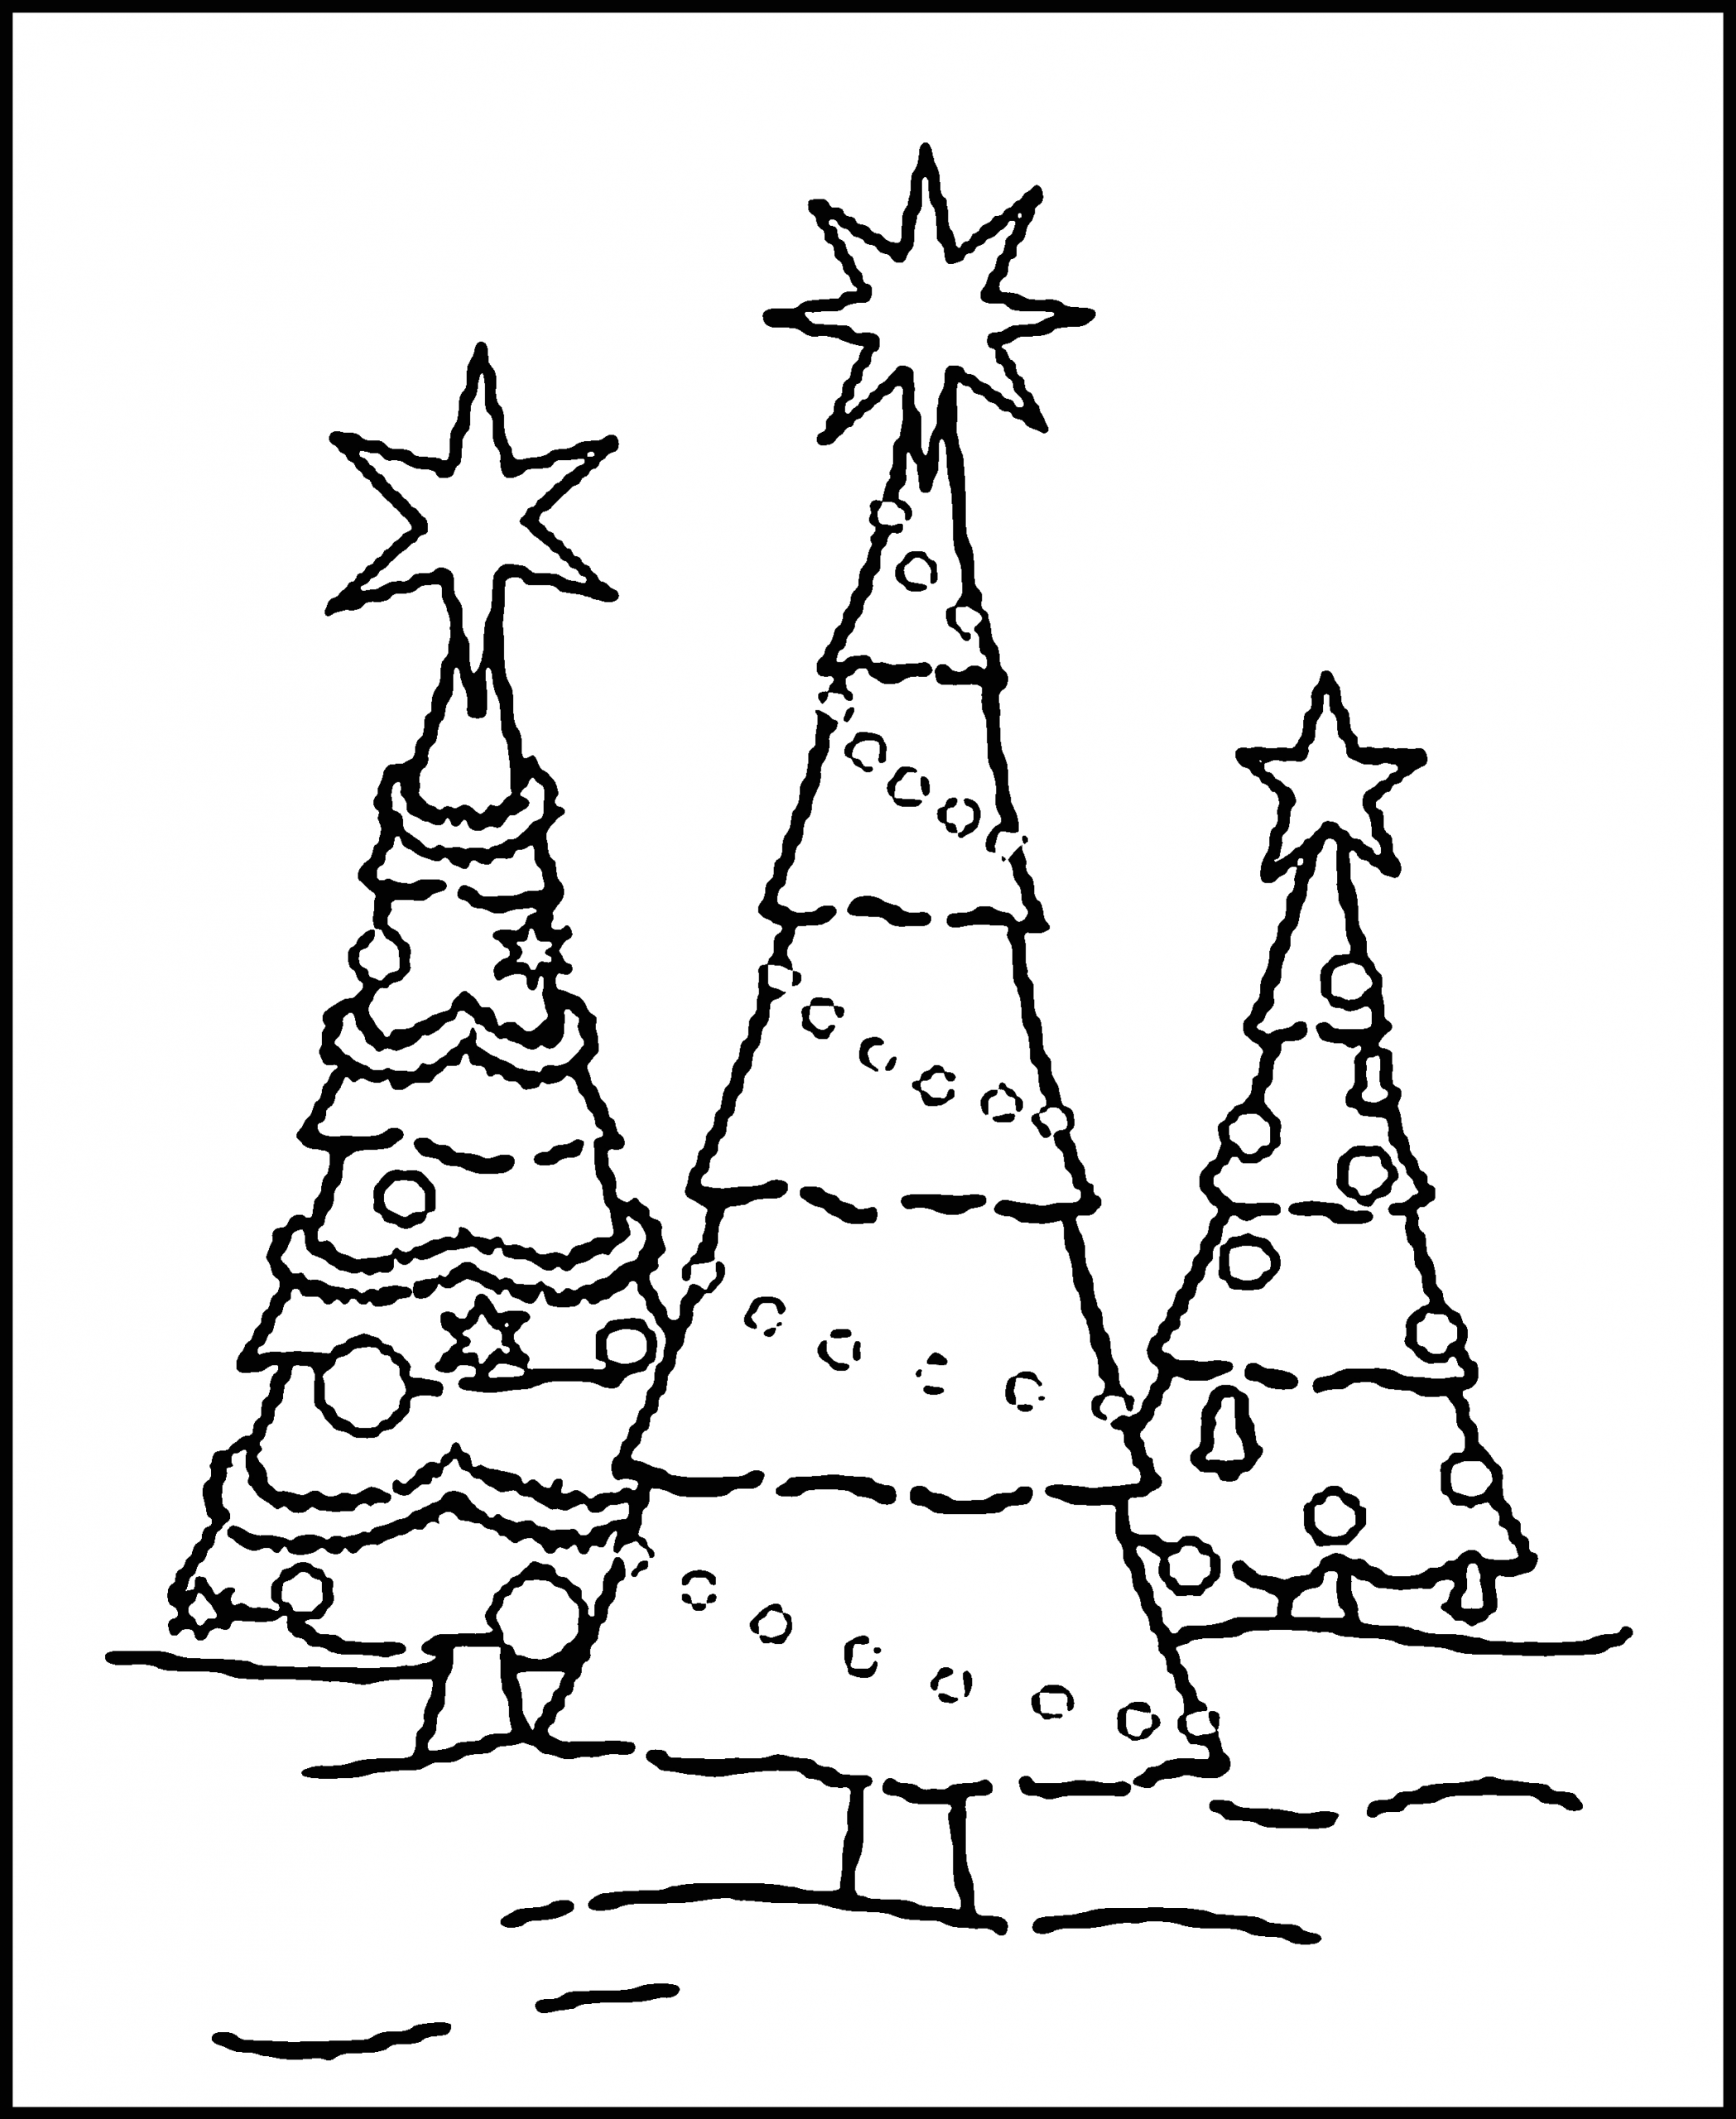 A Coloring Page Of A Christmas Tree Free Printable Christmas Tree Coloring Pages for Kids